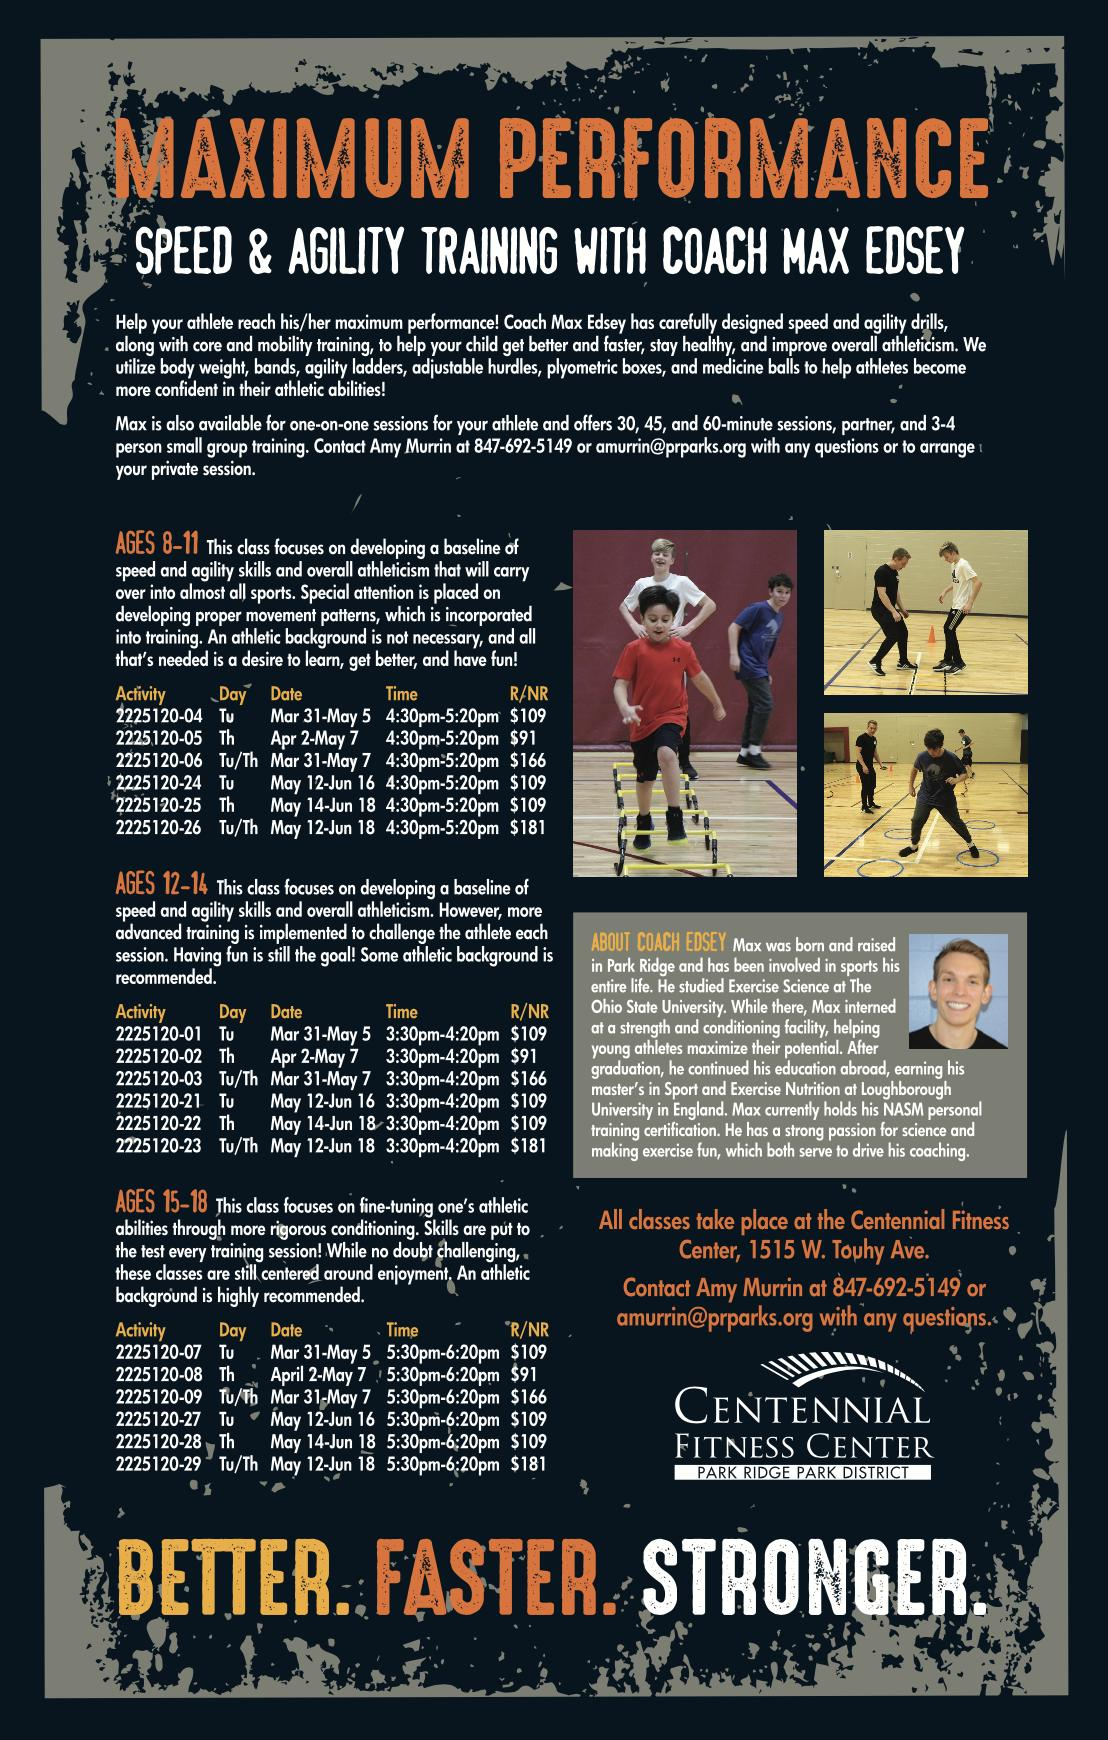 Max Performance Speed and Agility Training